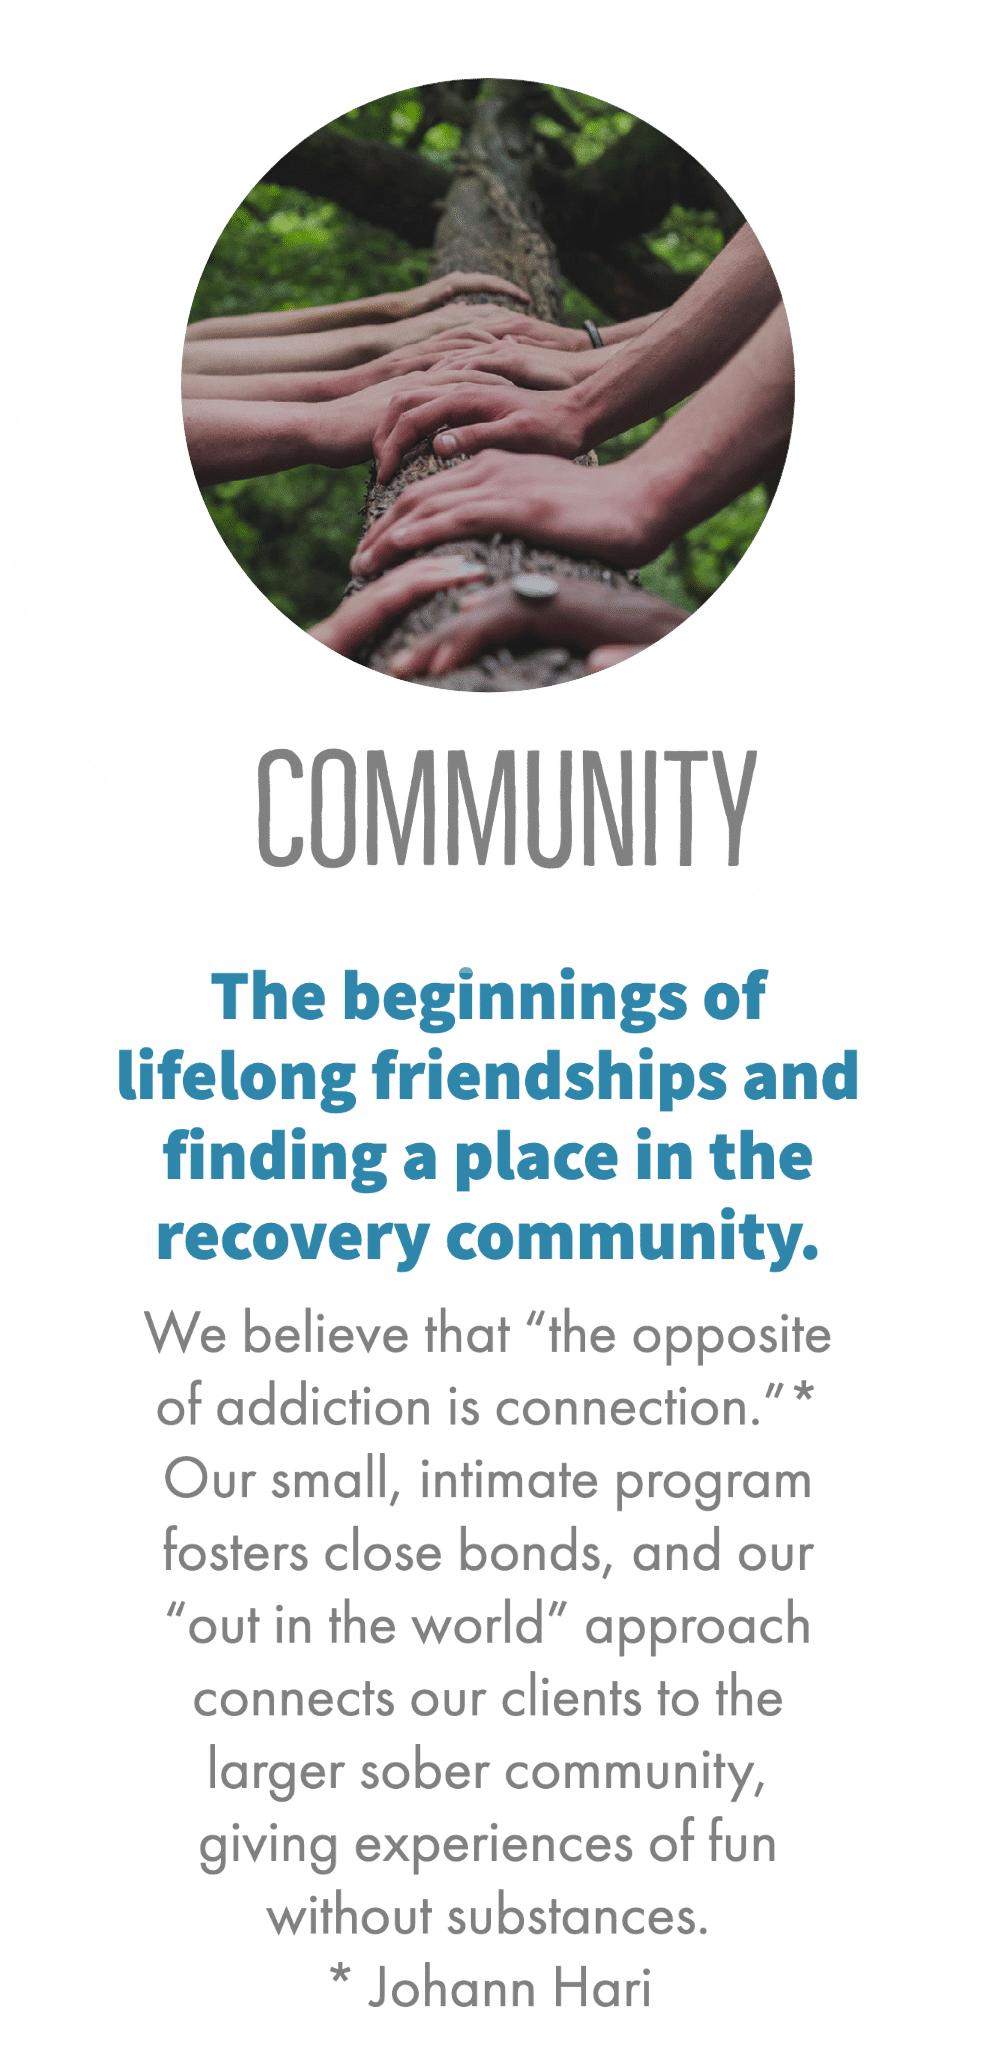 Community Holistic Recovery